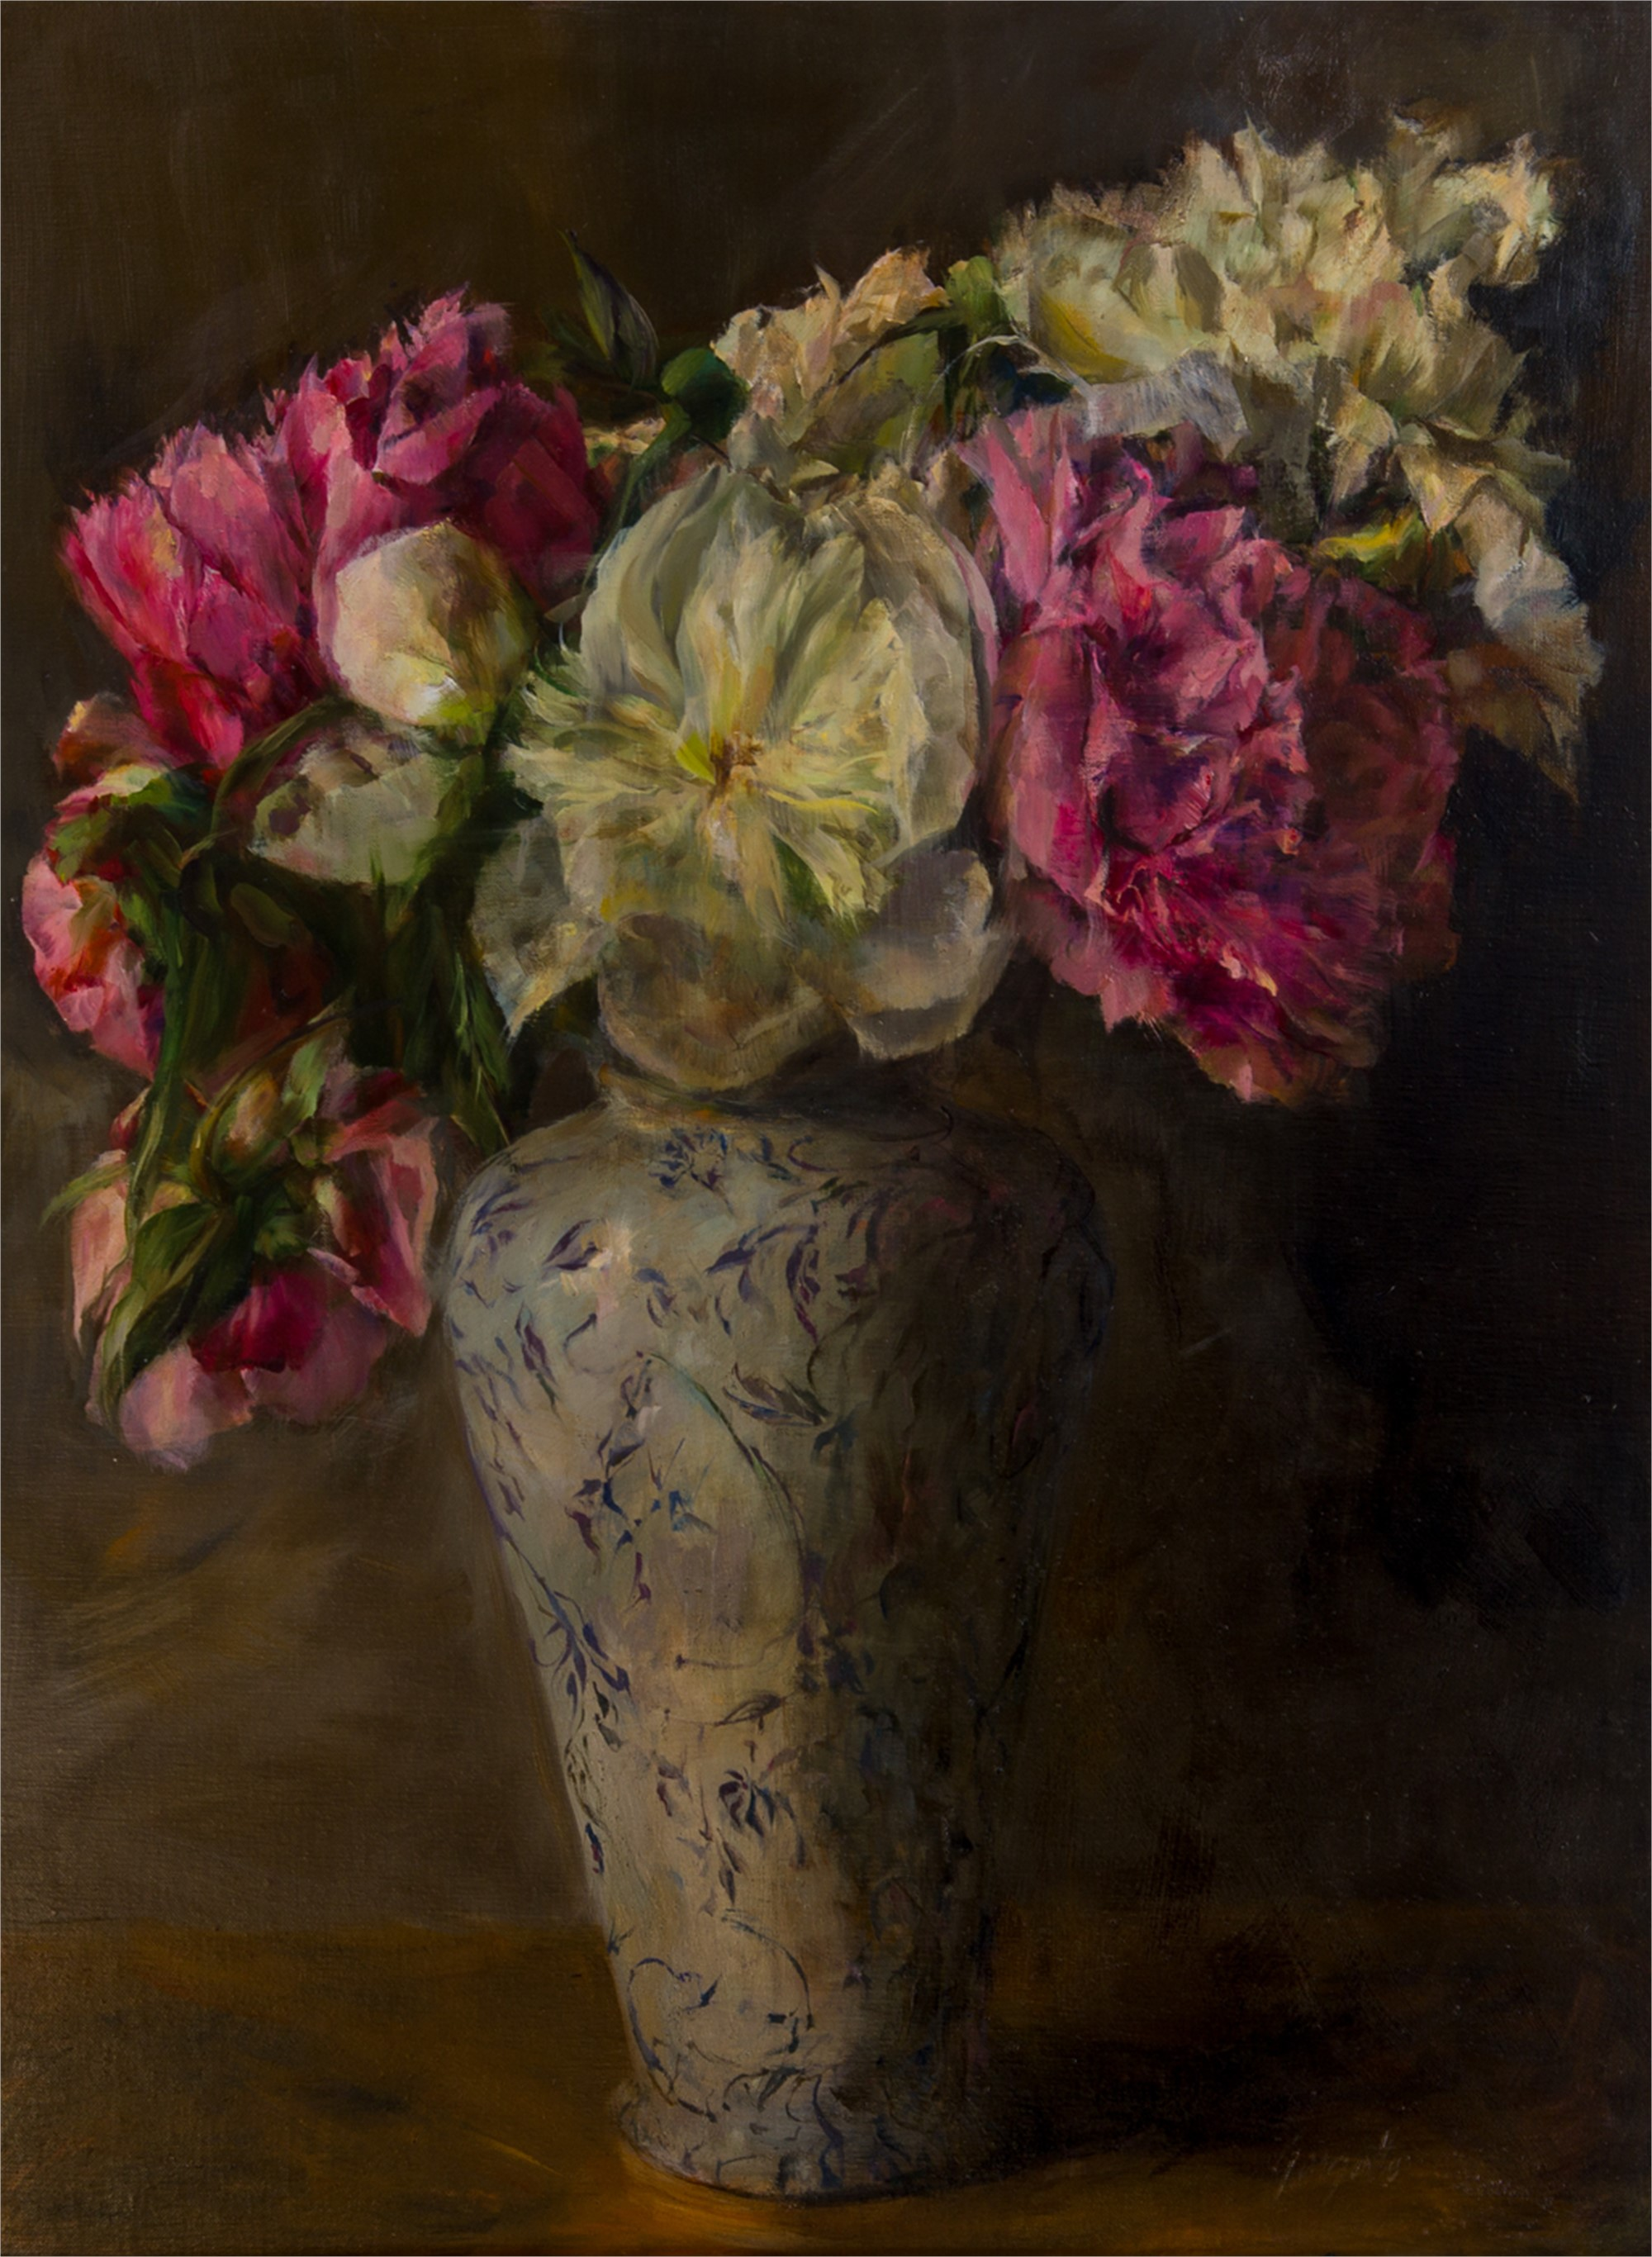 Peonies in Antique Vase by Ann Gargotto